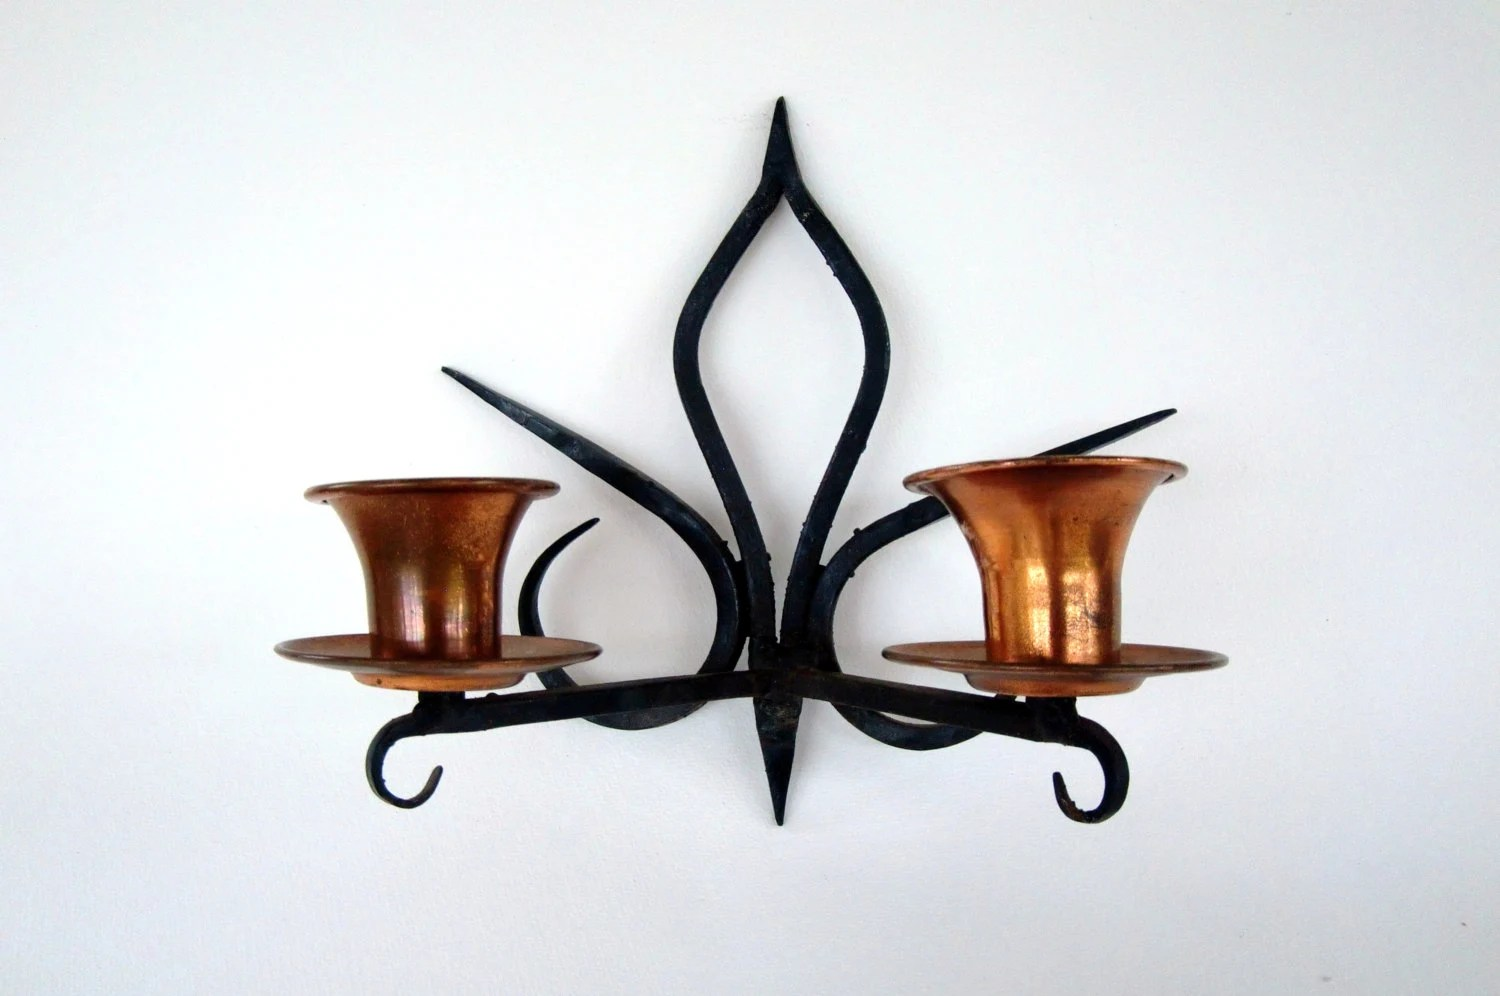 Vintage Hanging Wrought Iron and Copper Candle Holder Iron on Antique Wrought Iron Wall Candle Holders id=29811